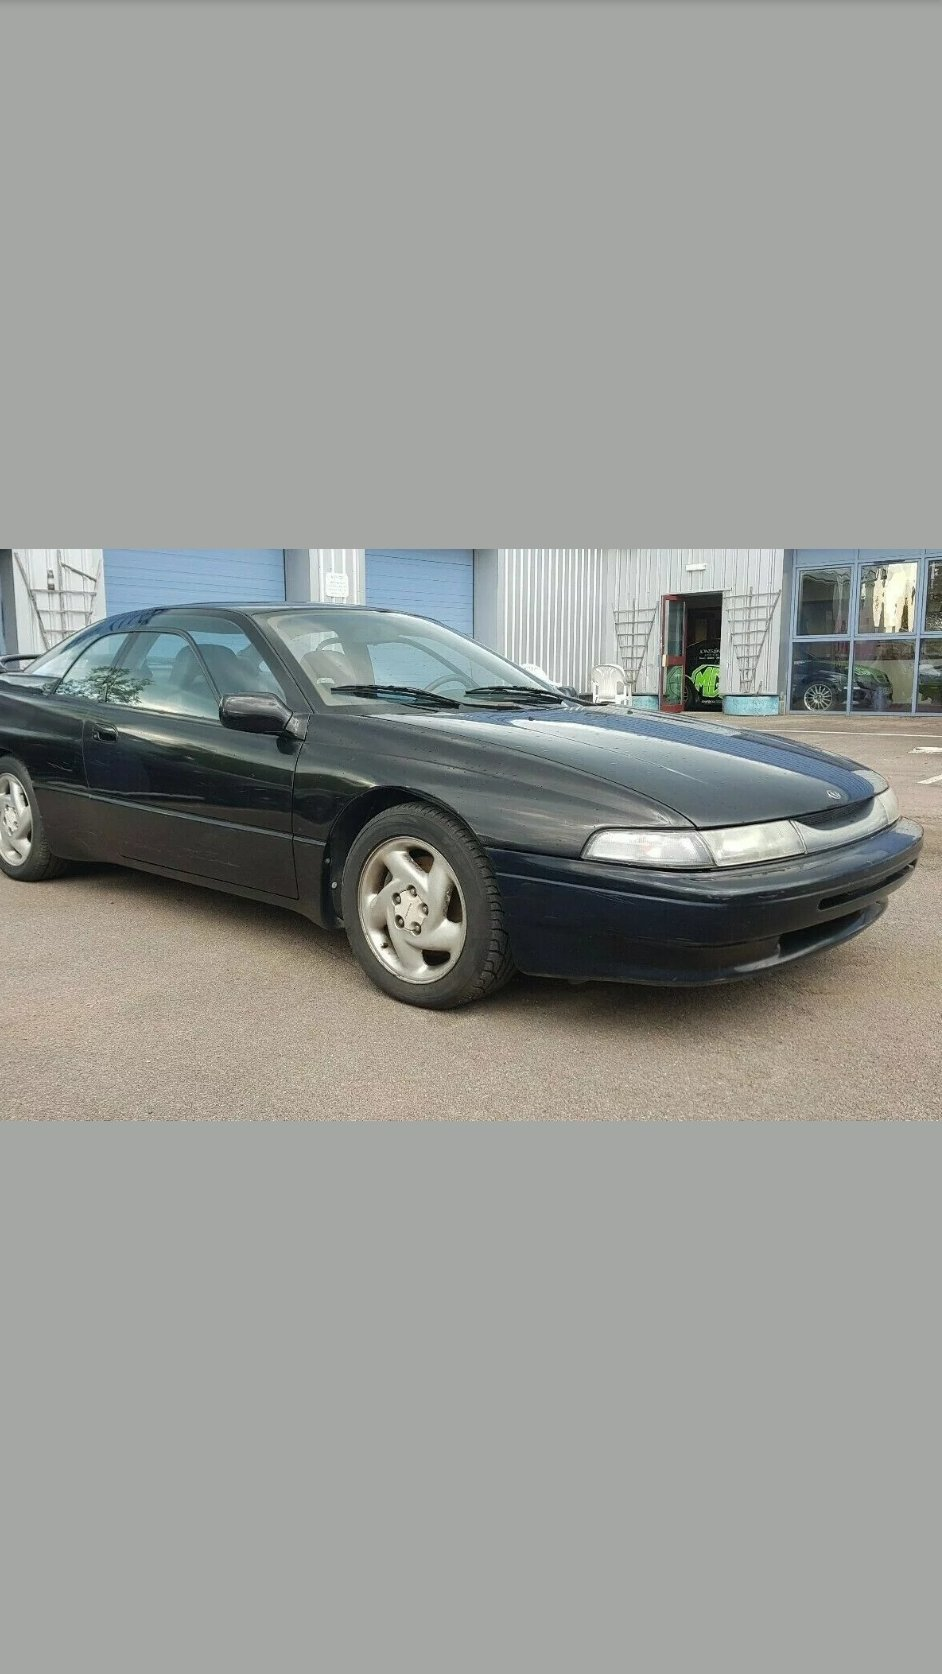 1992 Lhd subaru svx very rare in uk american spec For Sale (picture 2 of 2)